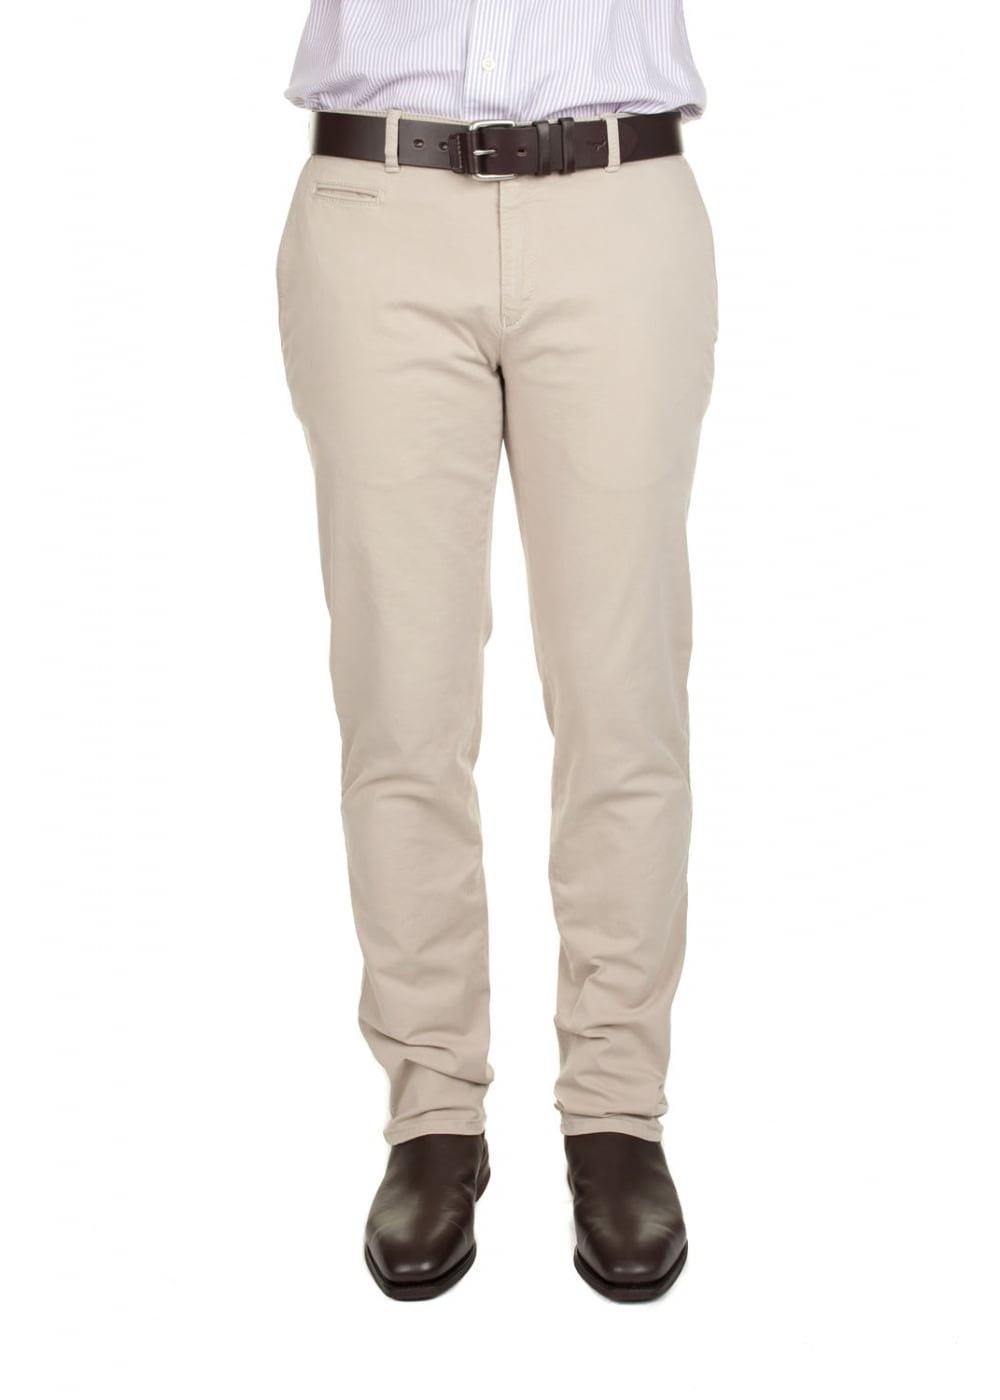 BRAX CHINO FOR MEN – Elegant casual pants for men's wardrobe